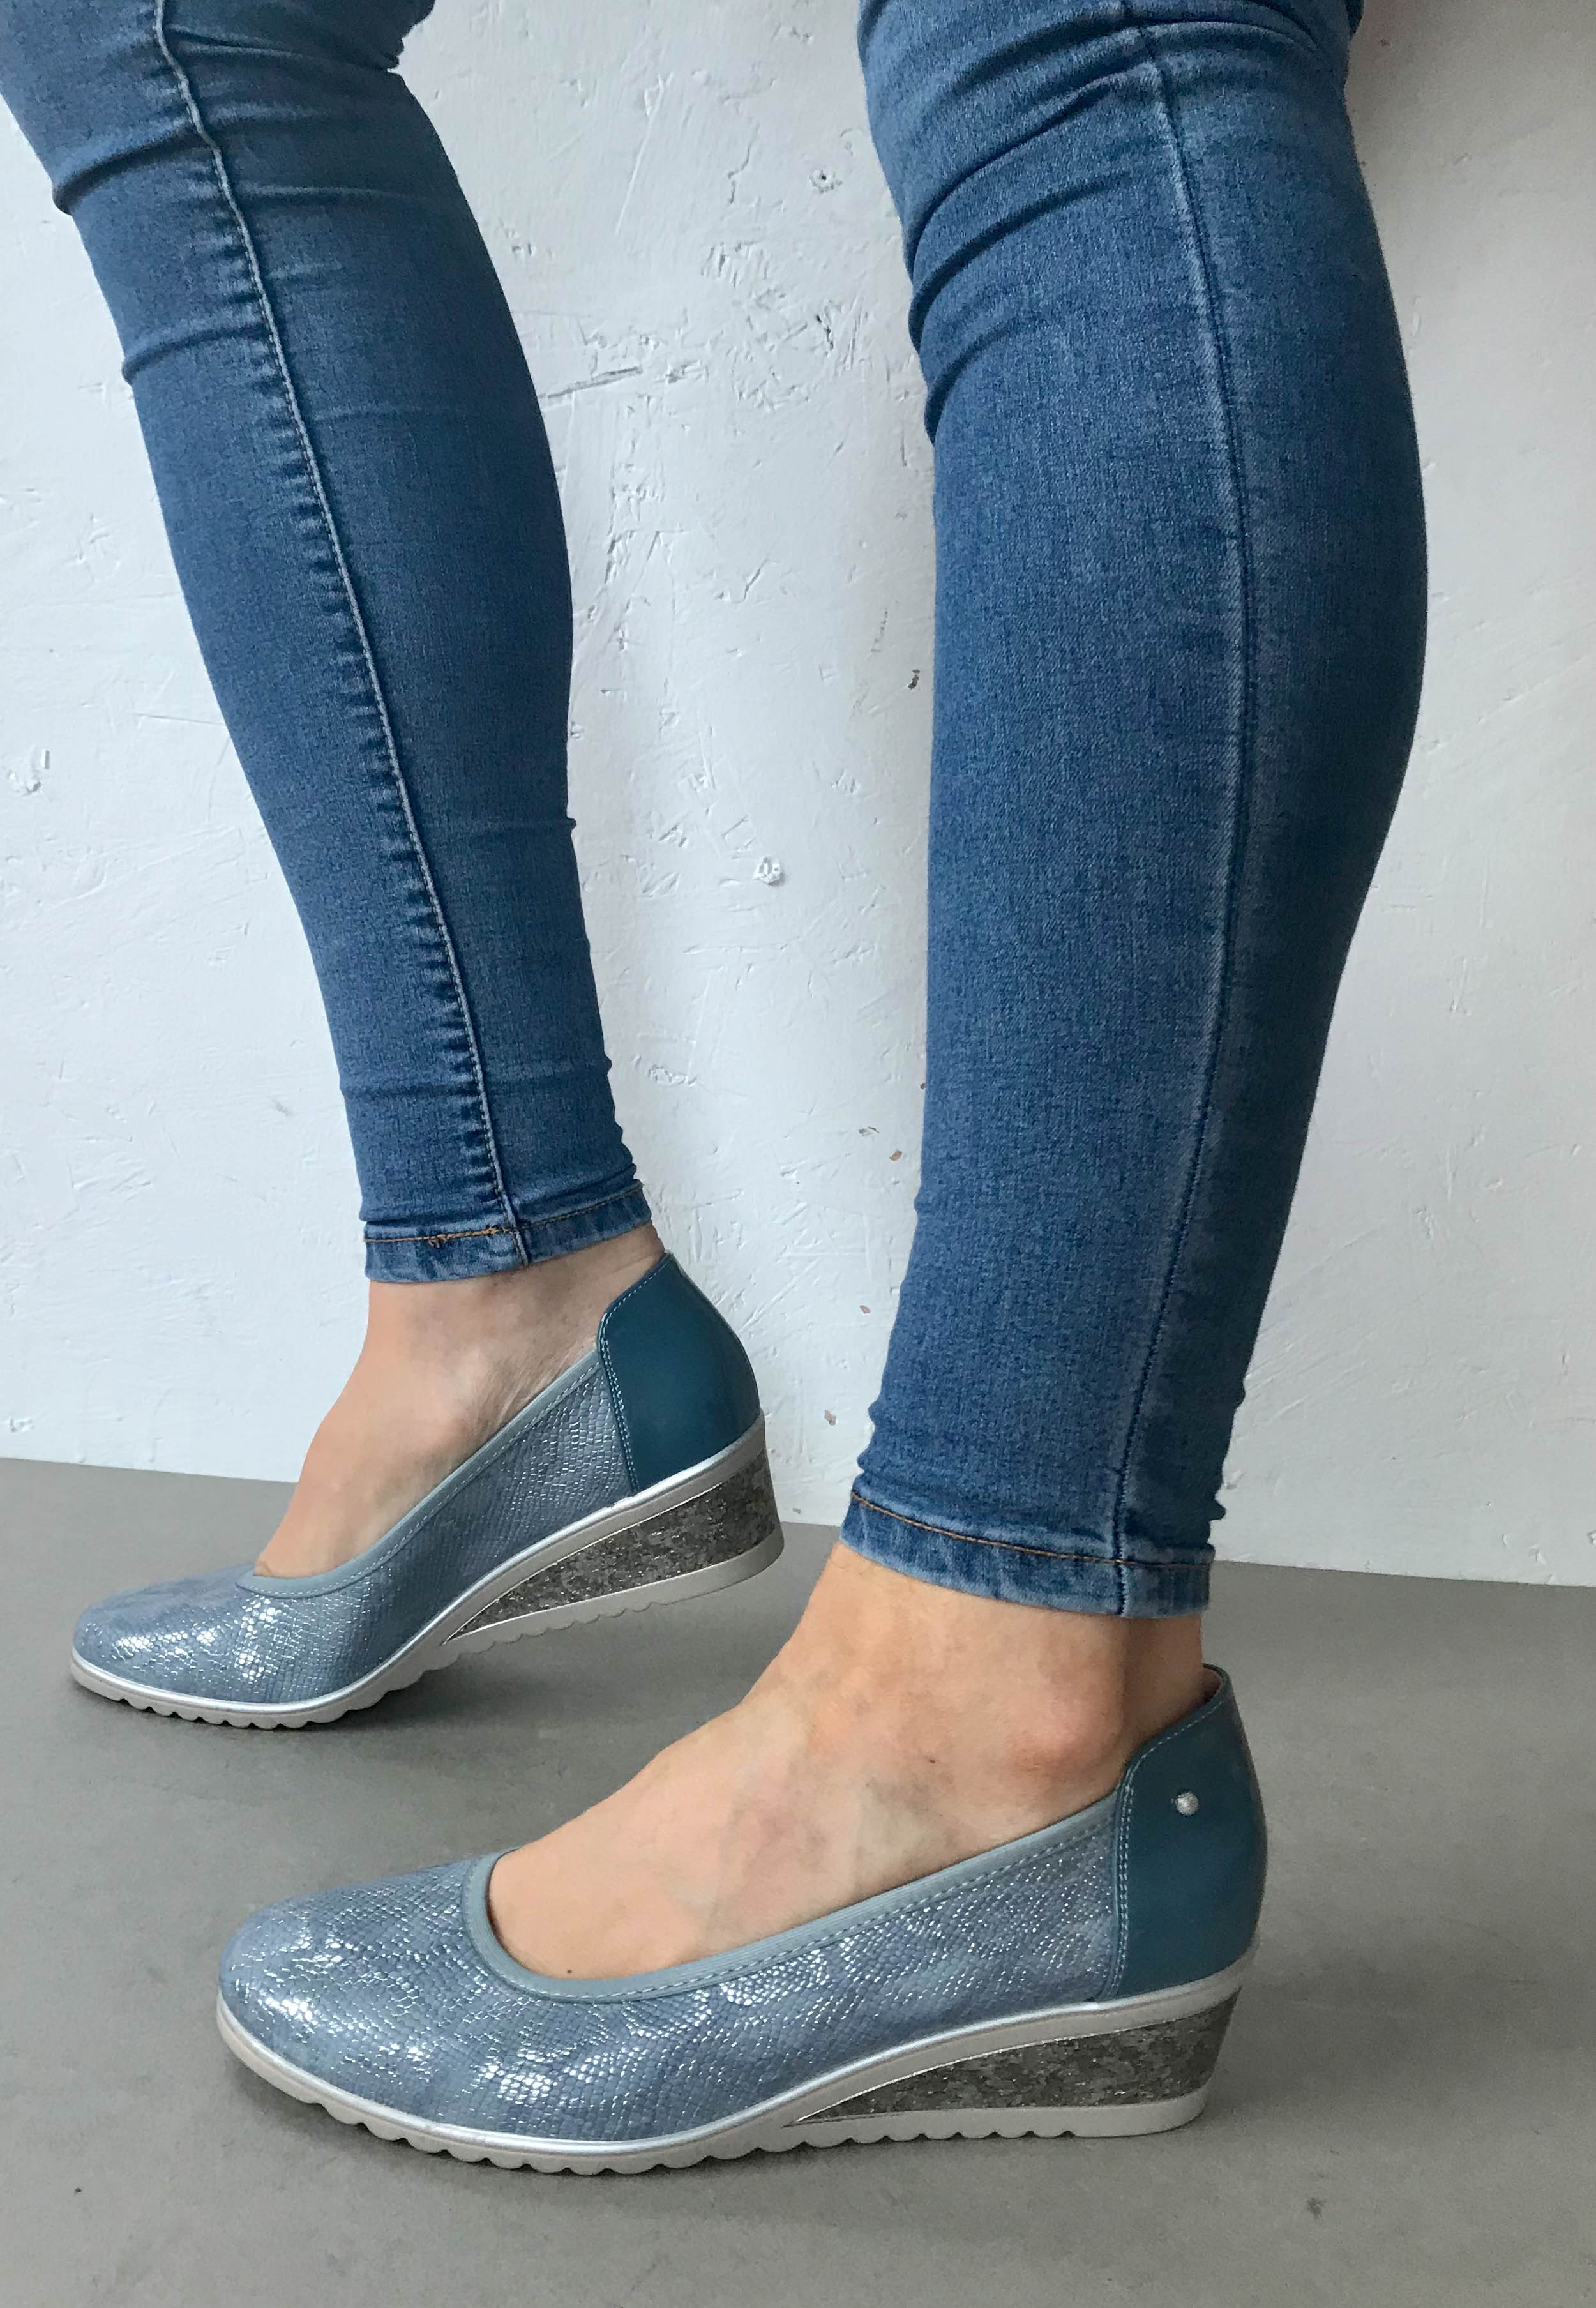 fashionable womens shoes blue